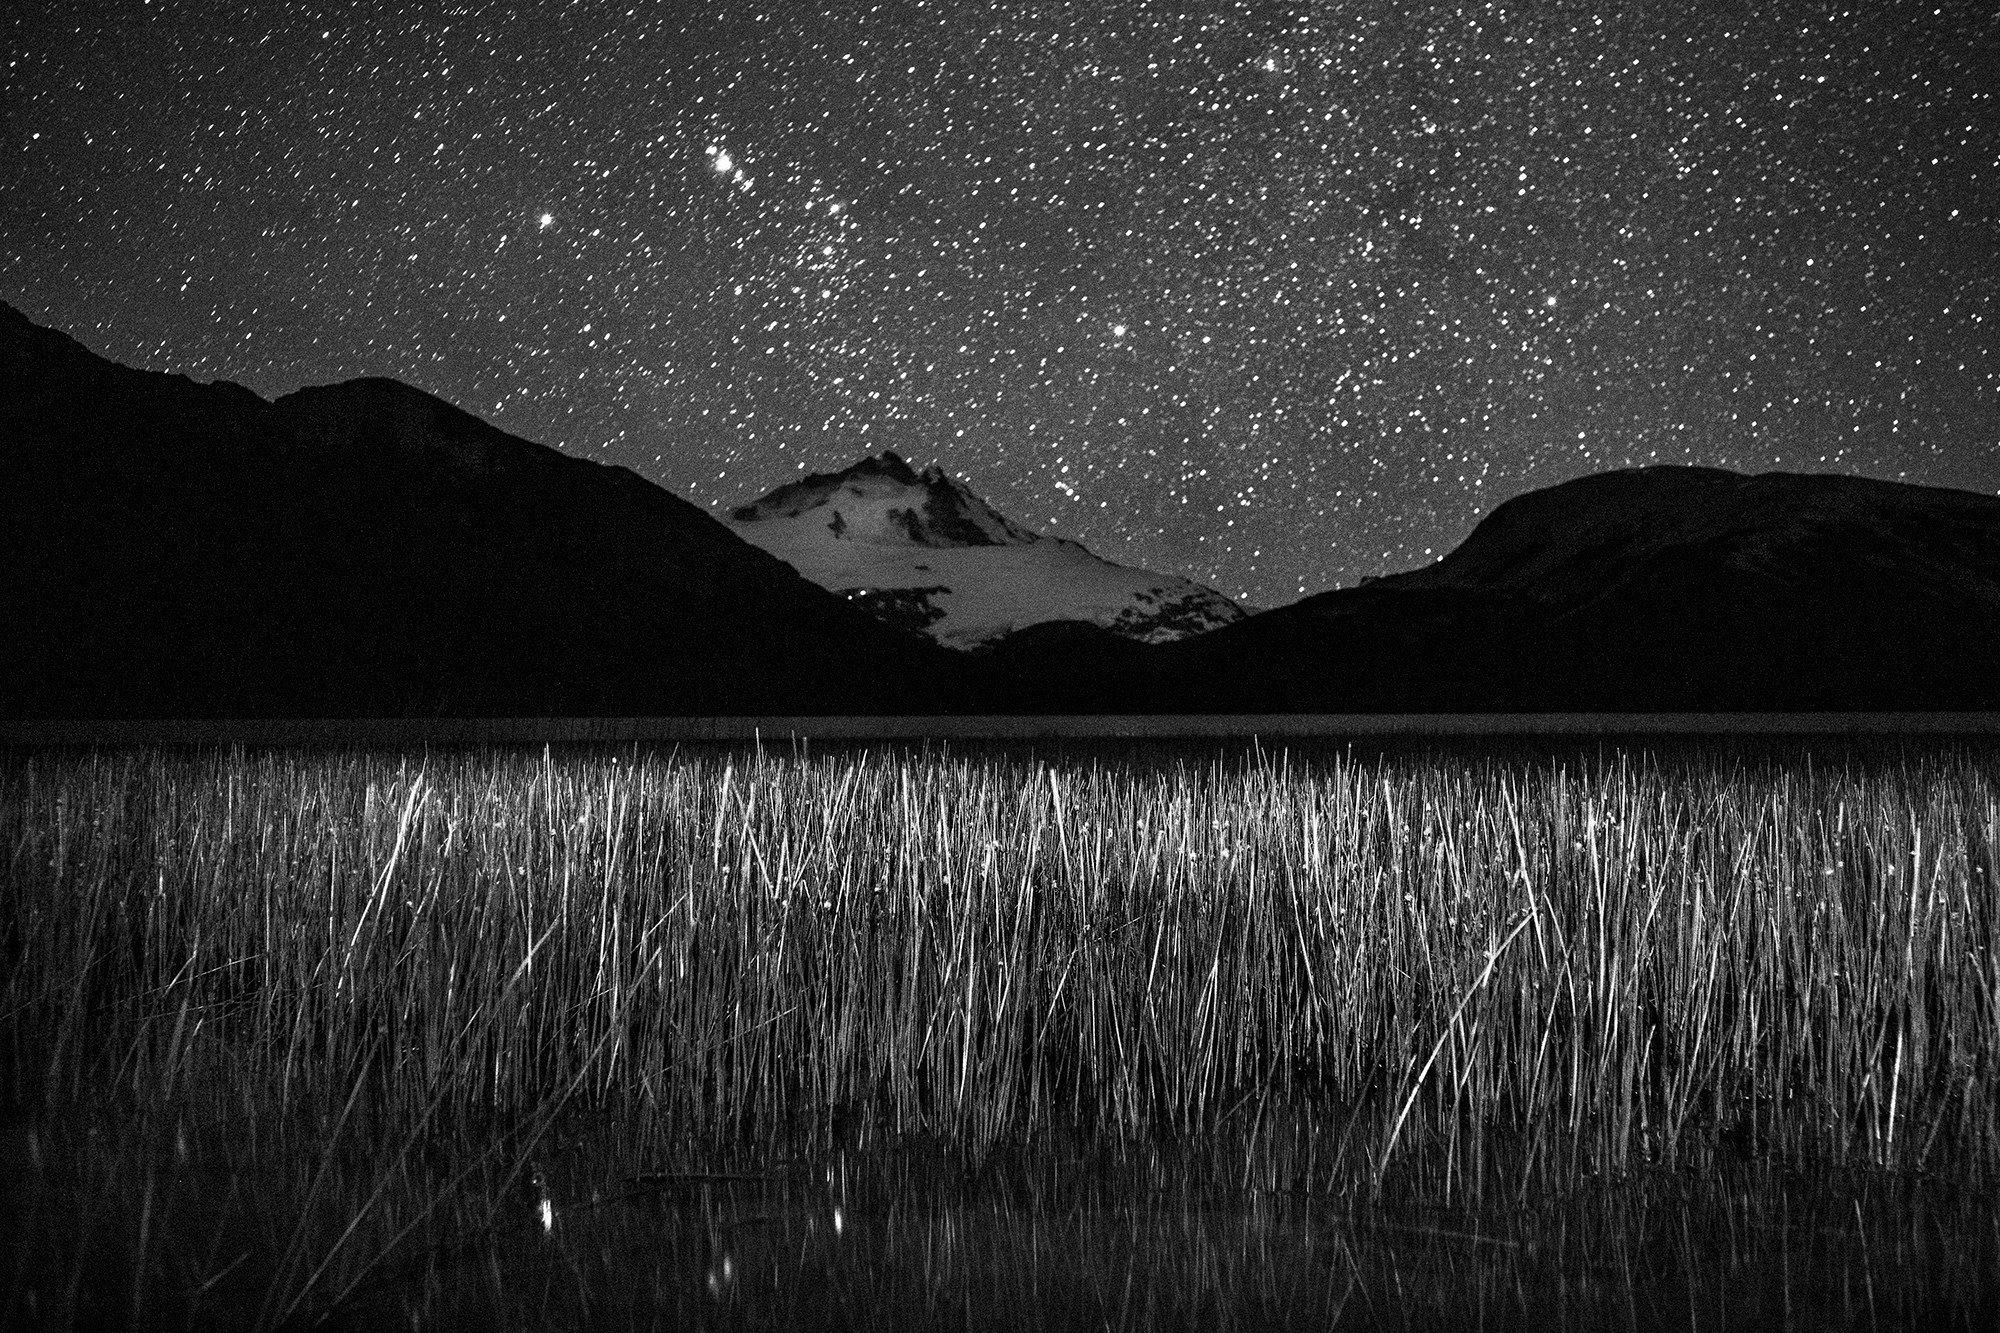 Stars shine over field and mountains